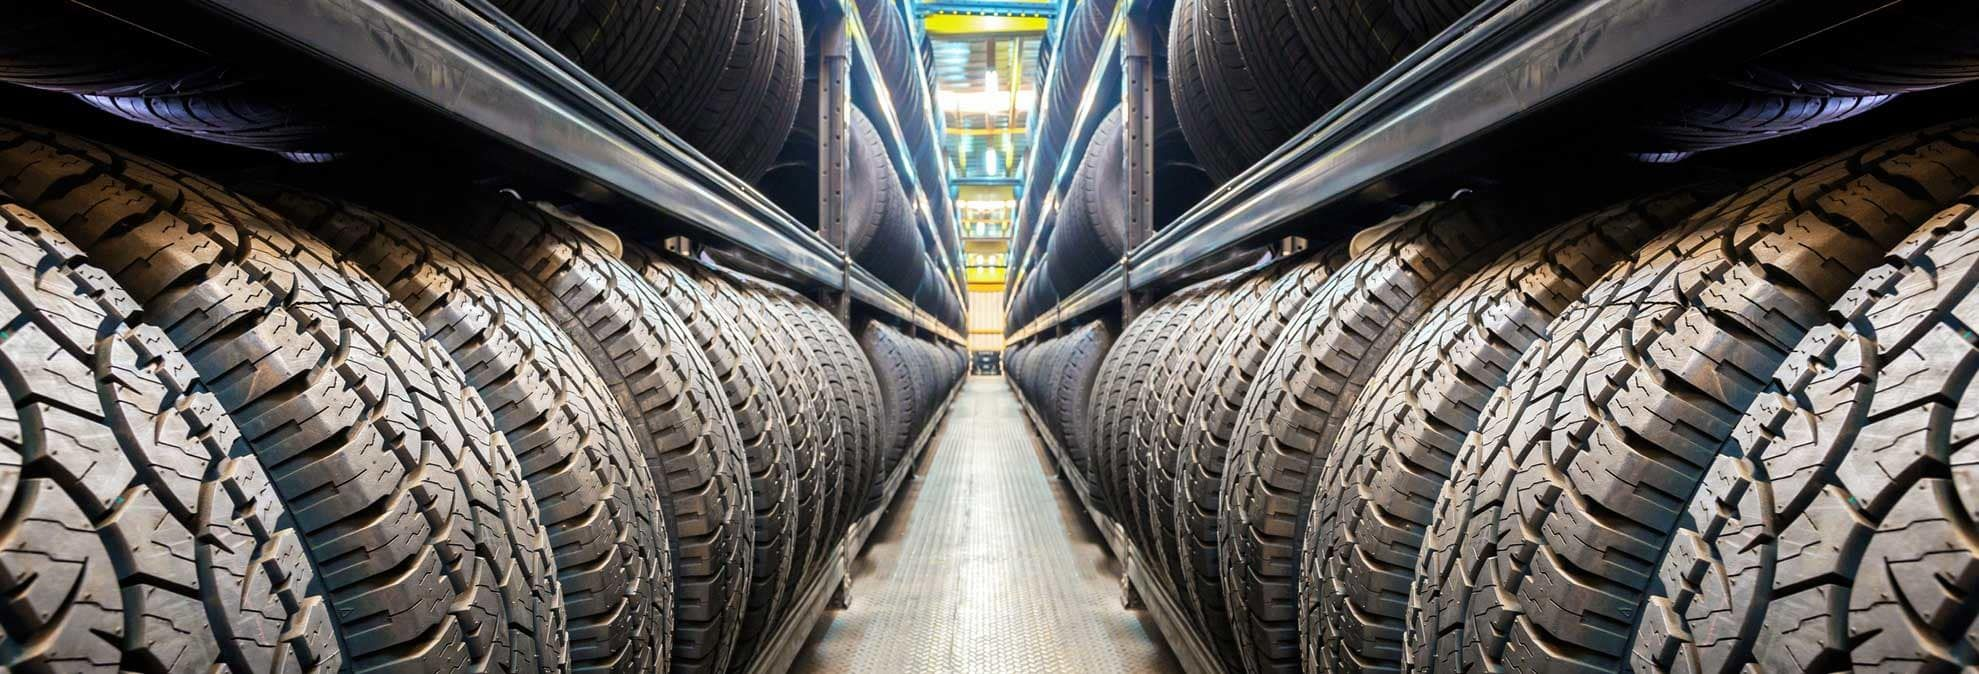 Tire Buying Guide >> Tire Buying Guide New Tes Buy Tires Best Tyres Used Tires